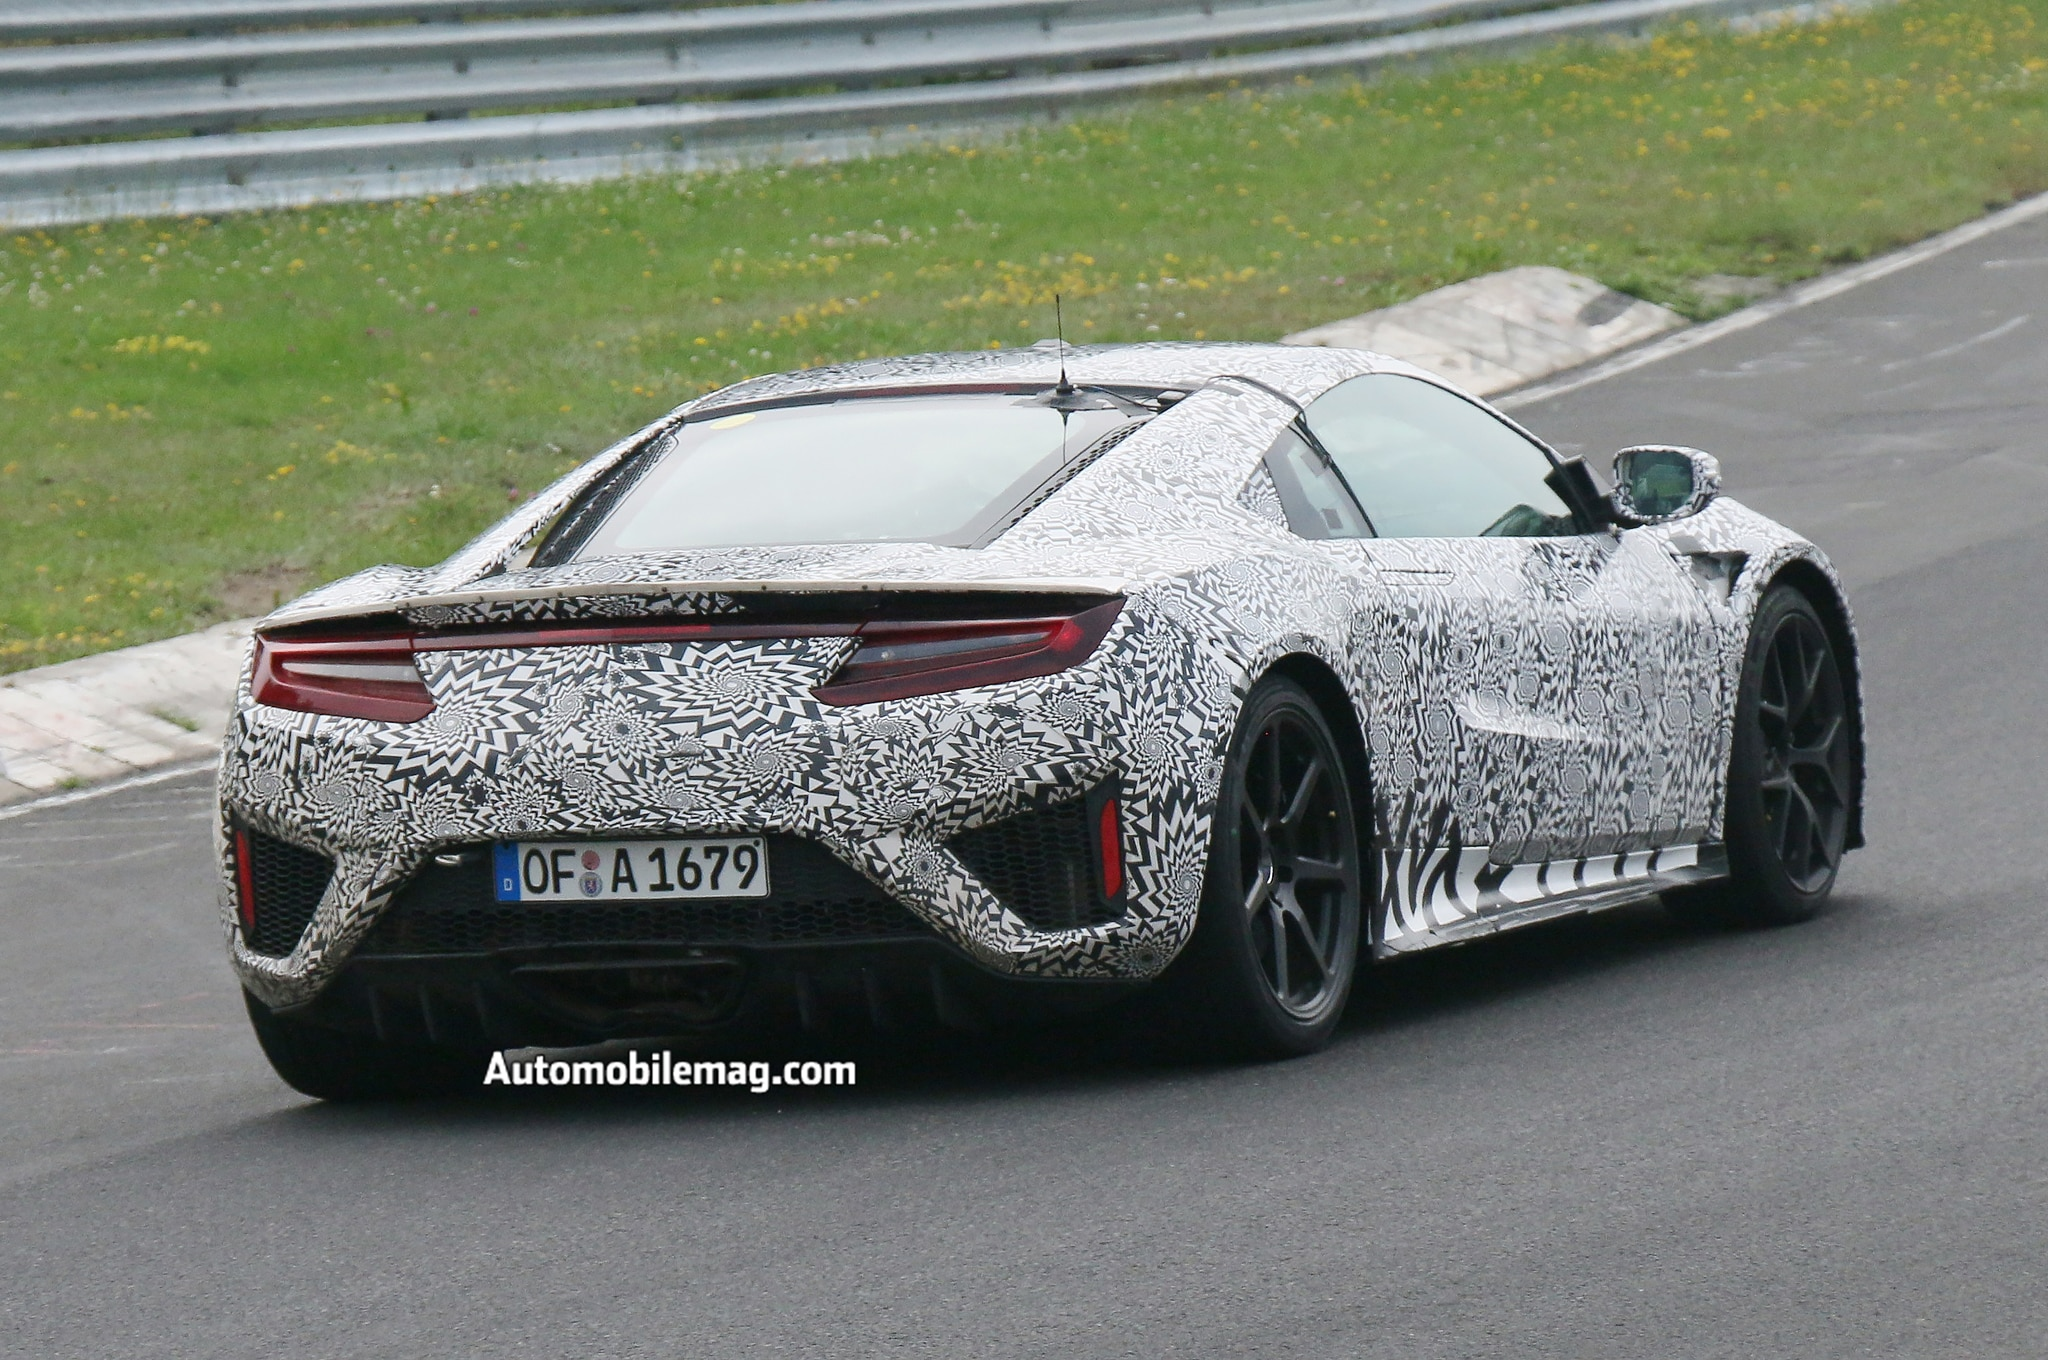 2015 Acura Nsx Prototype Burns At The Nurburgring